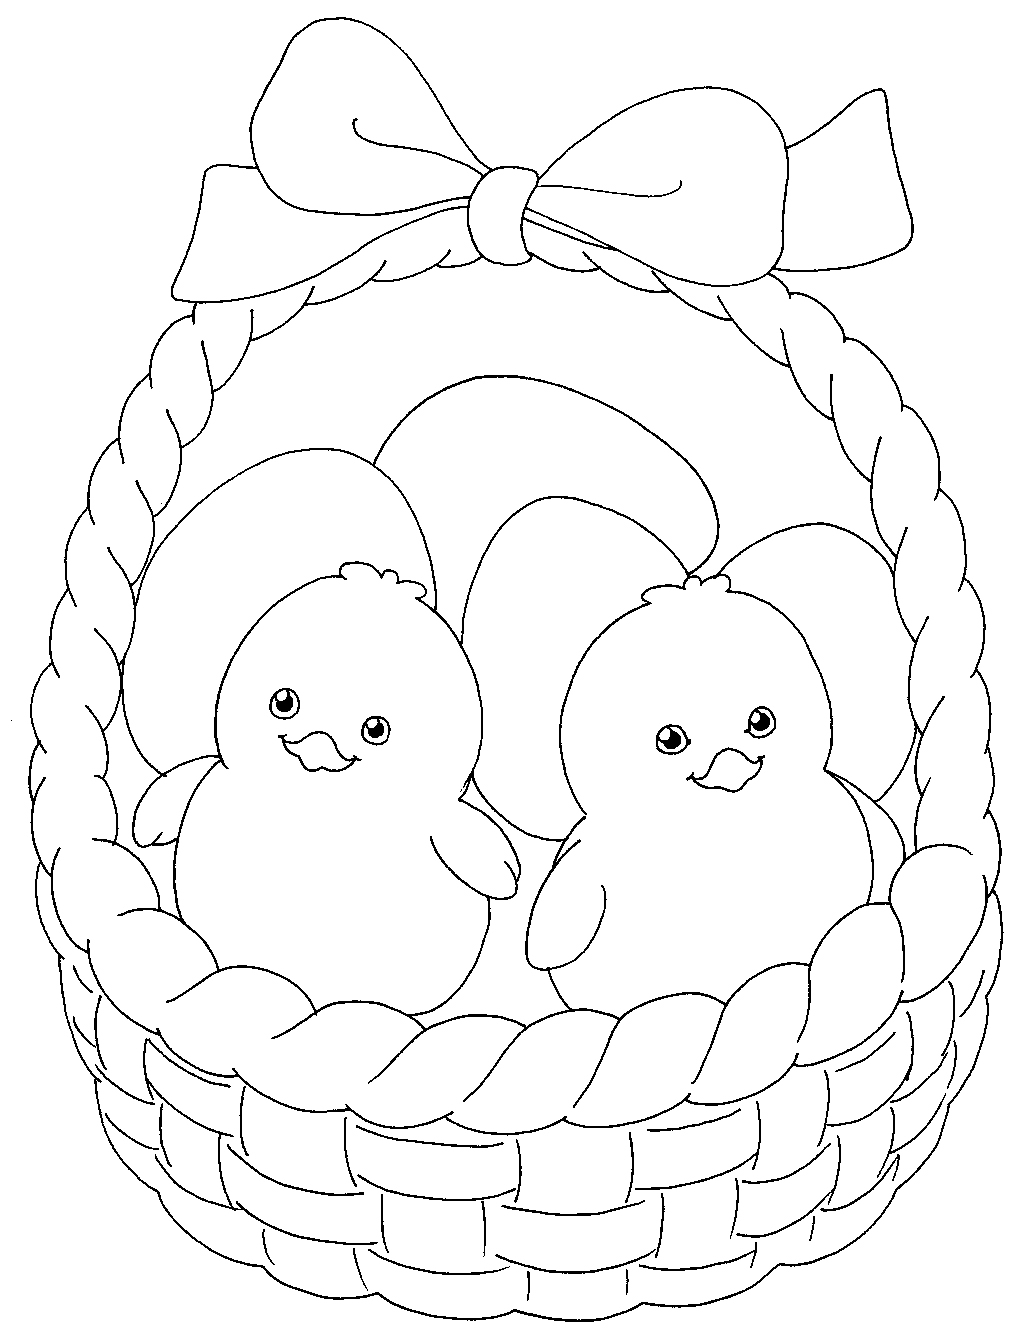 easter chicks coloring pages - photo#3